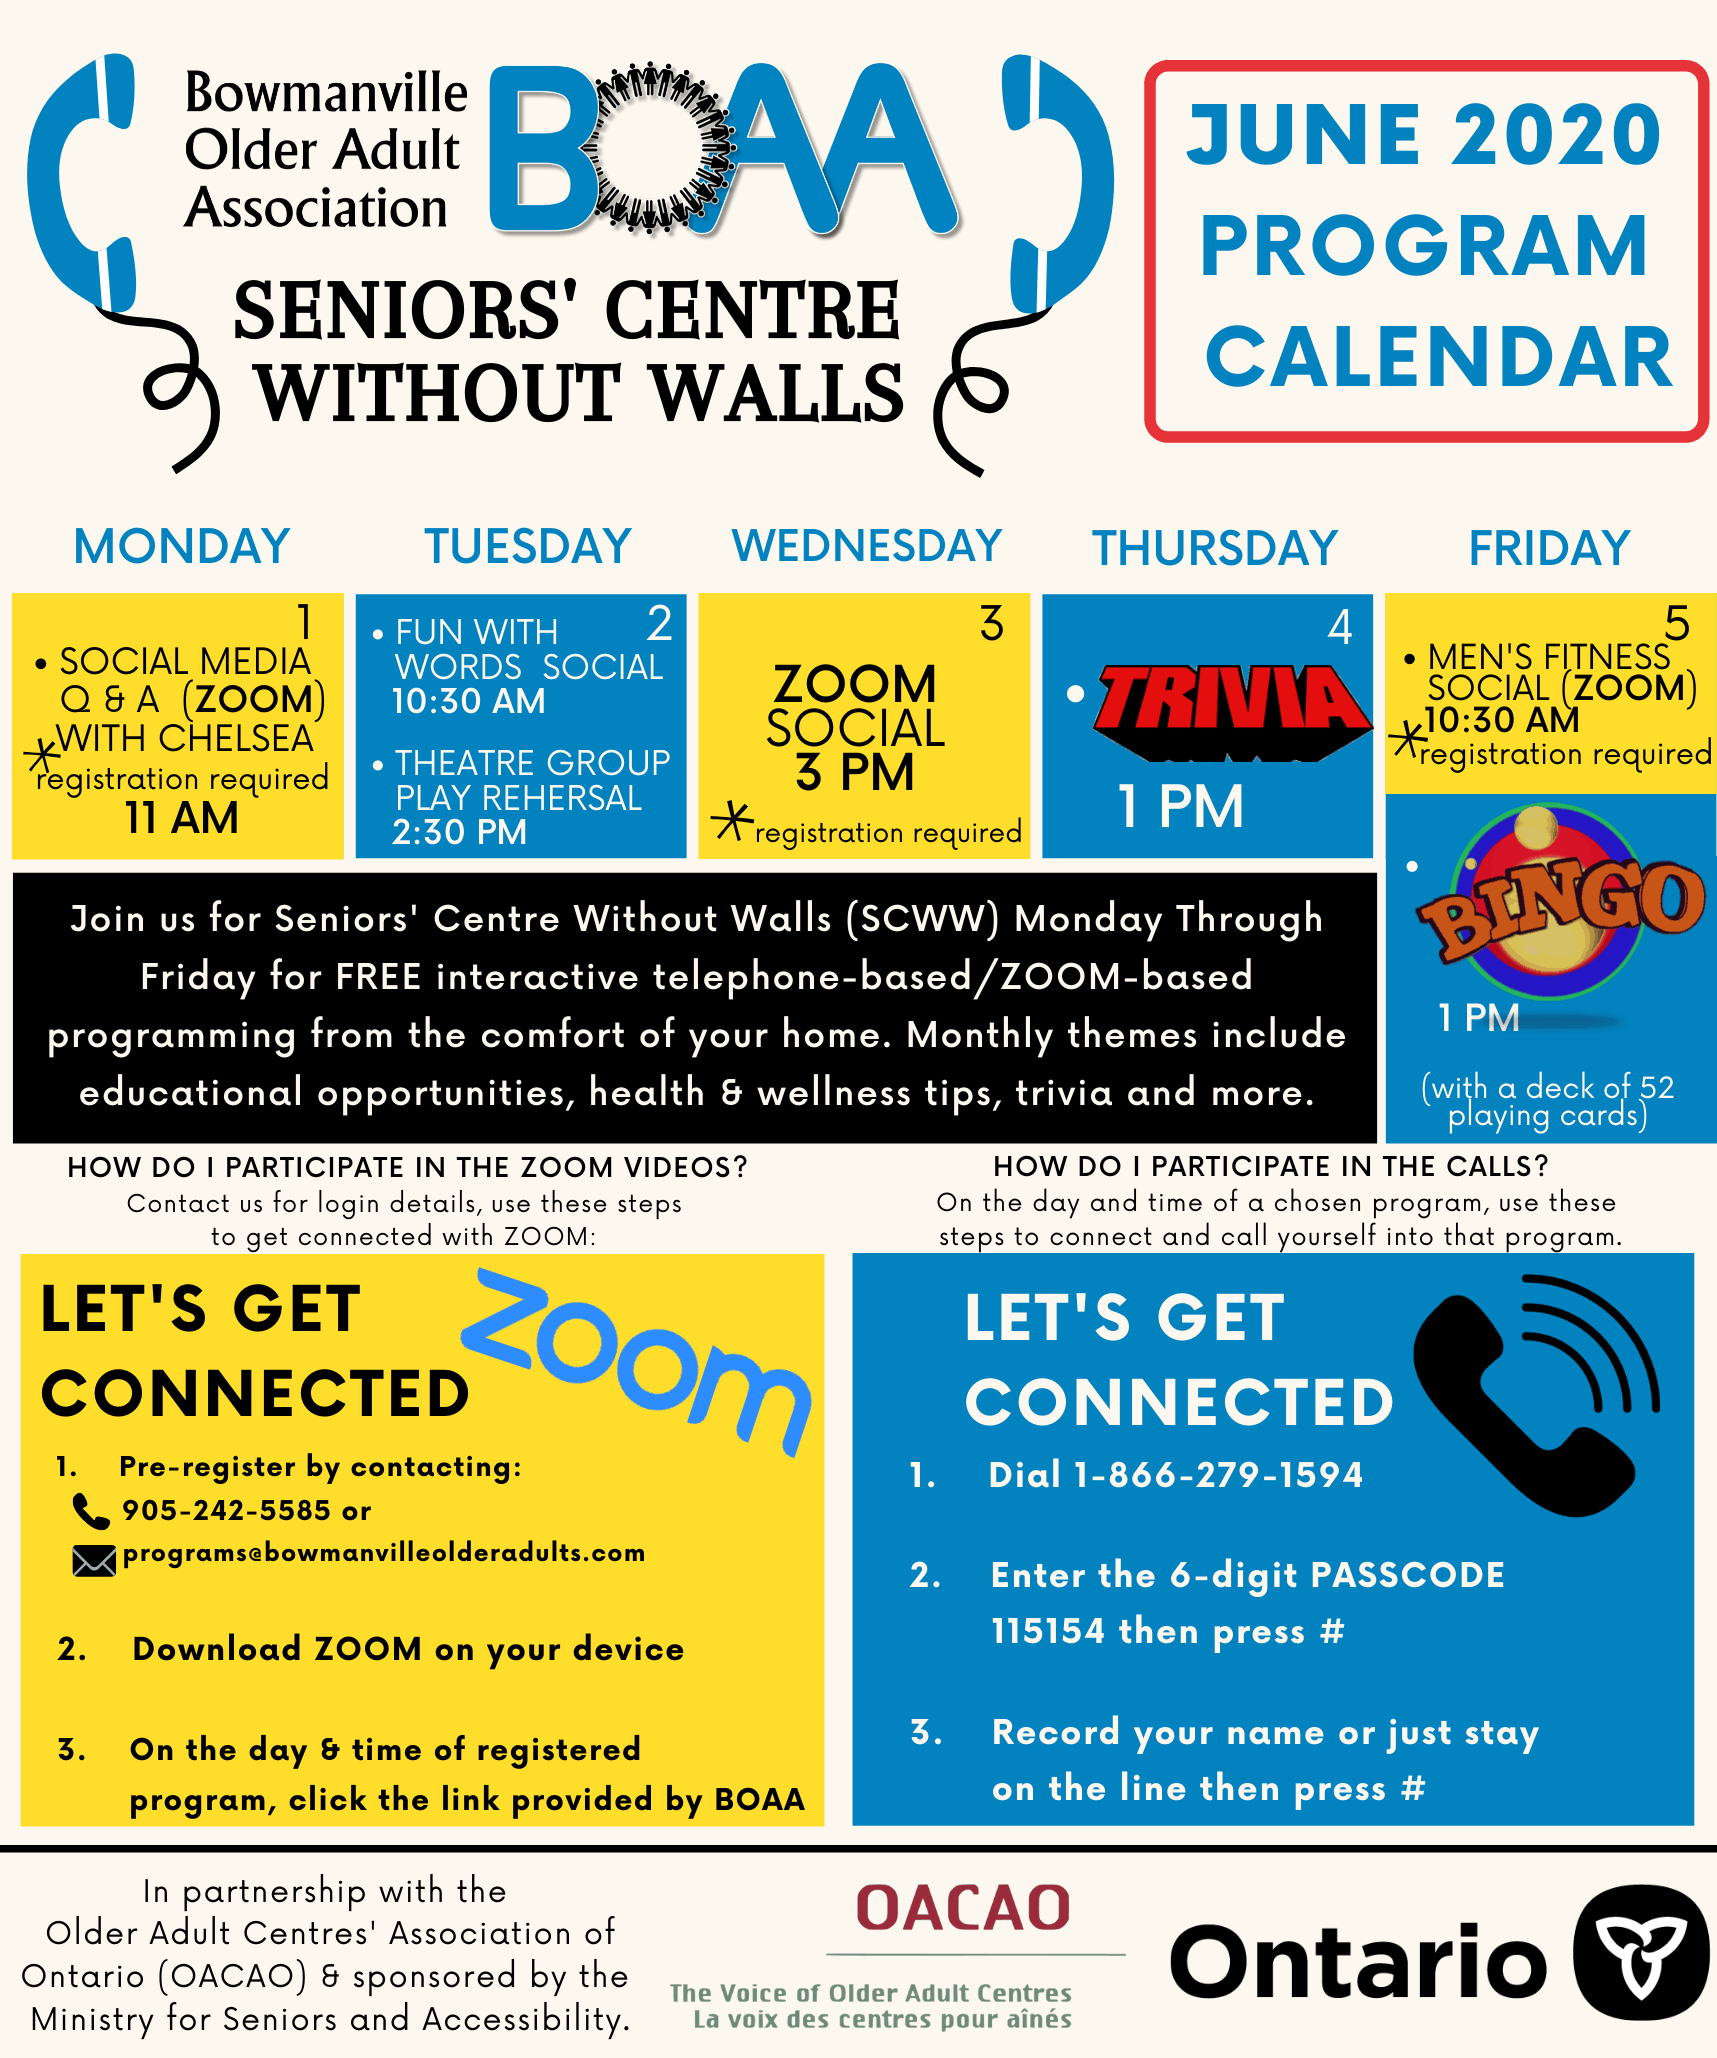 BOAA Seniors' Centre Without Walls – June 1st to June 5th